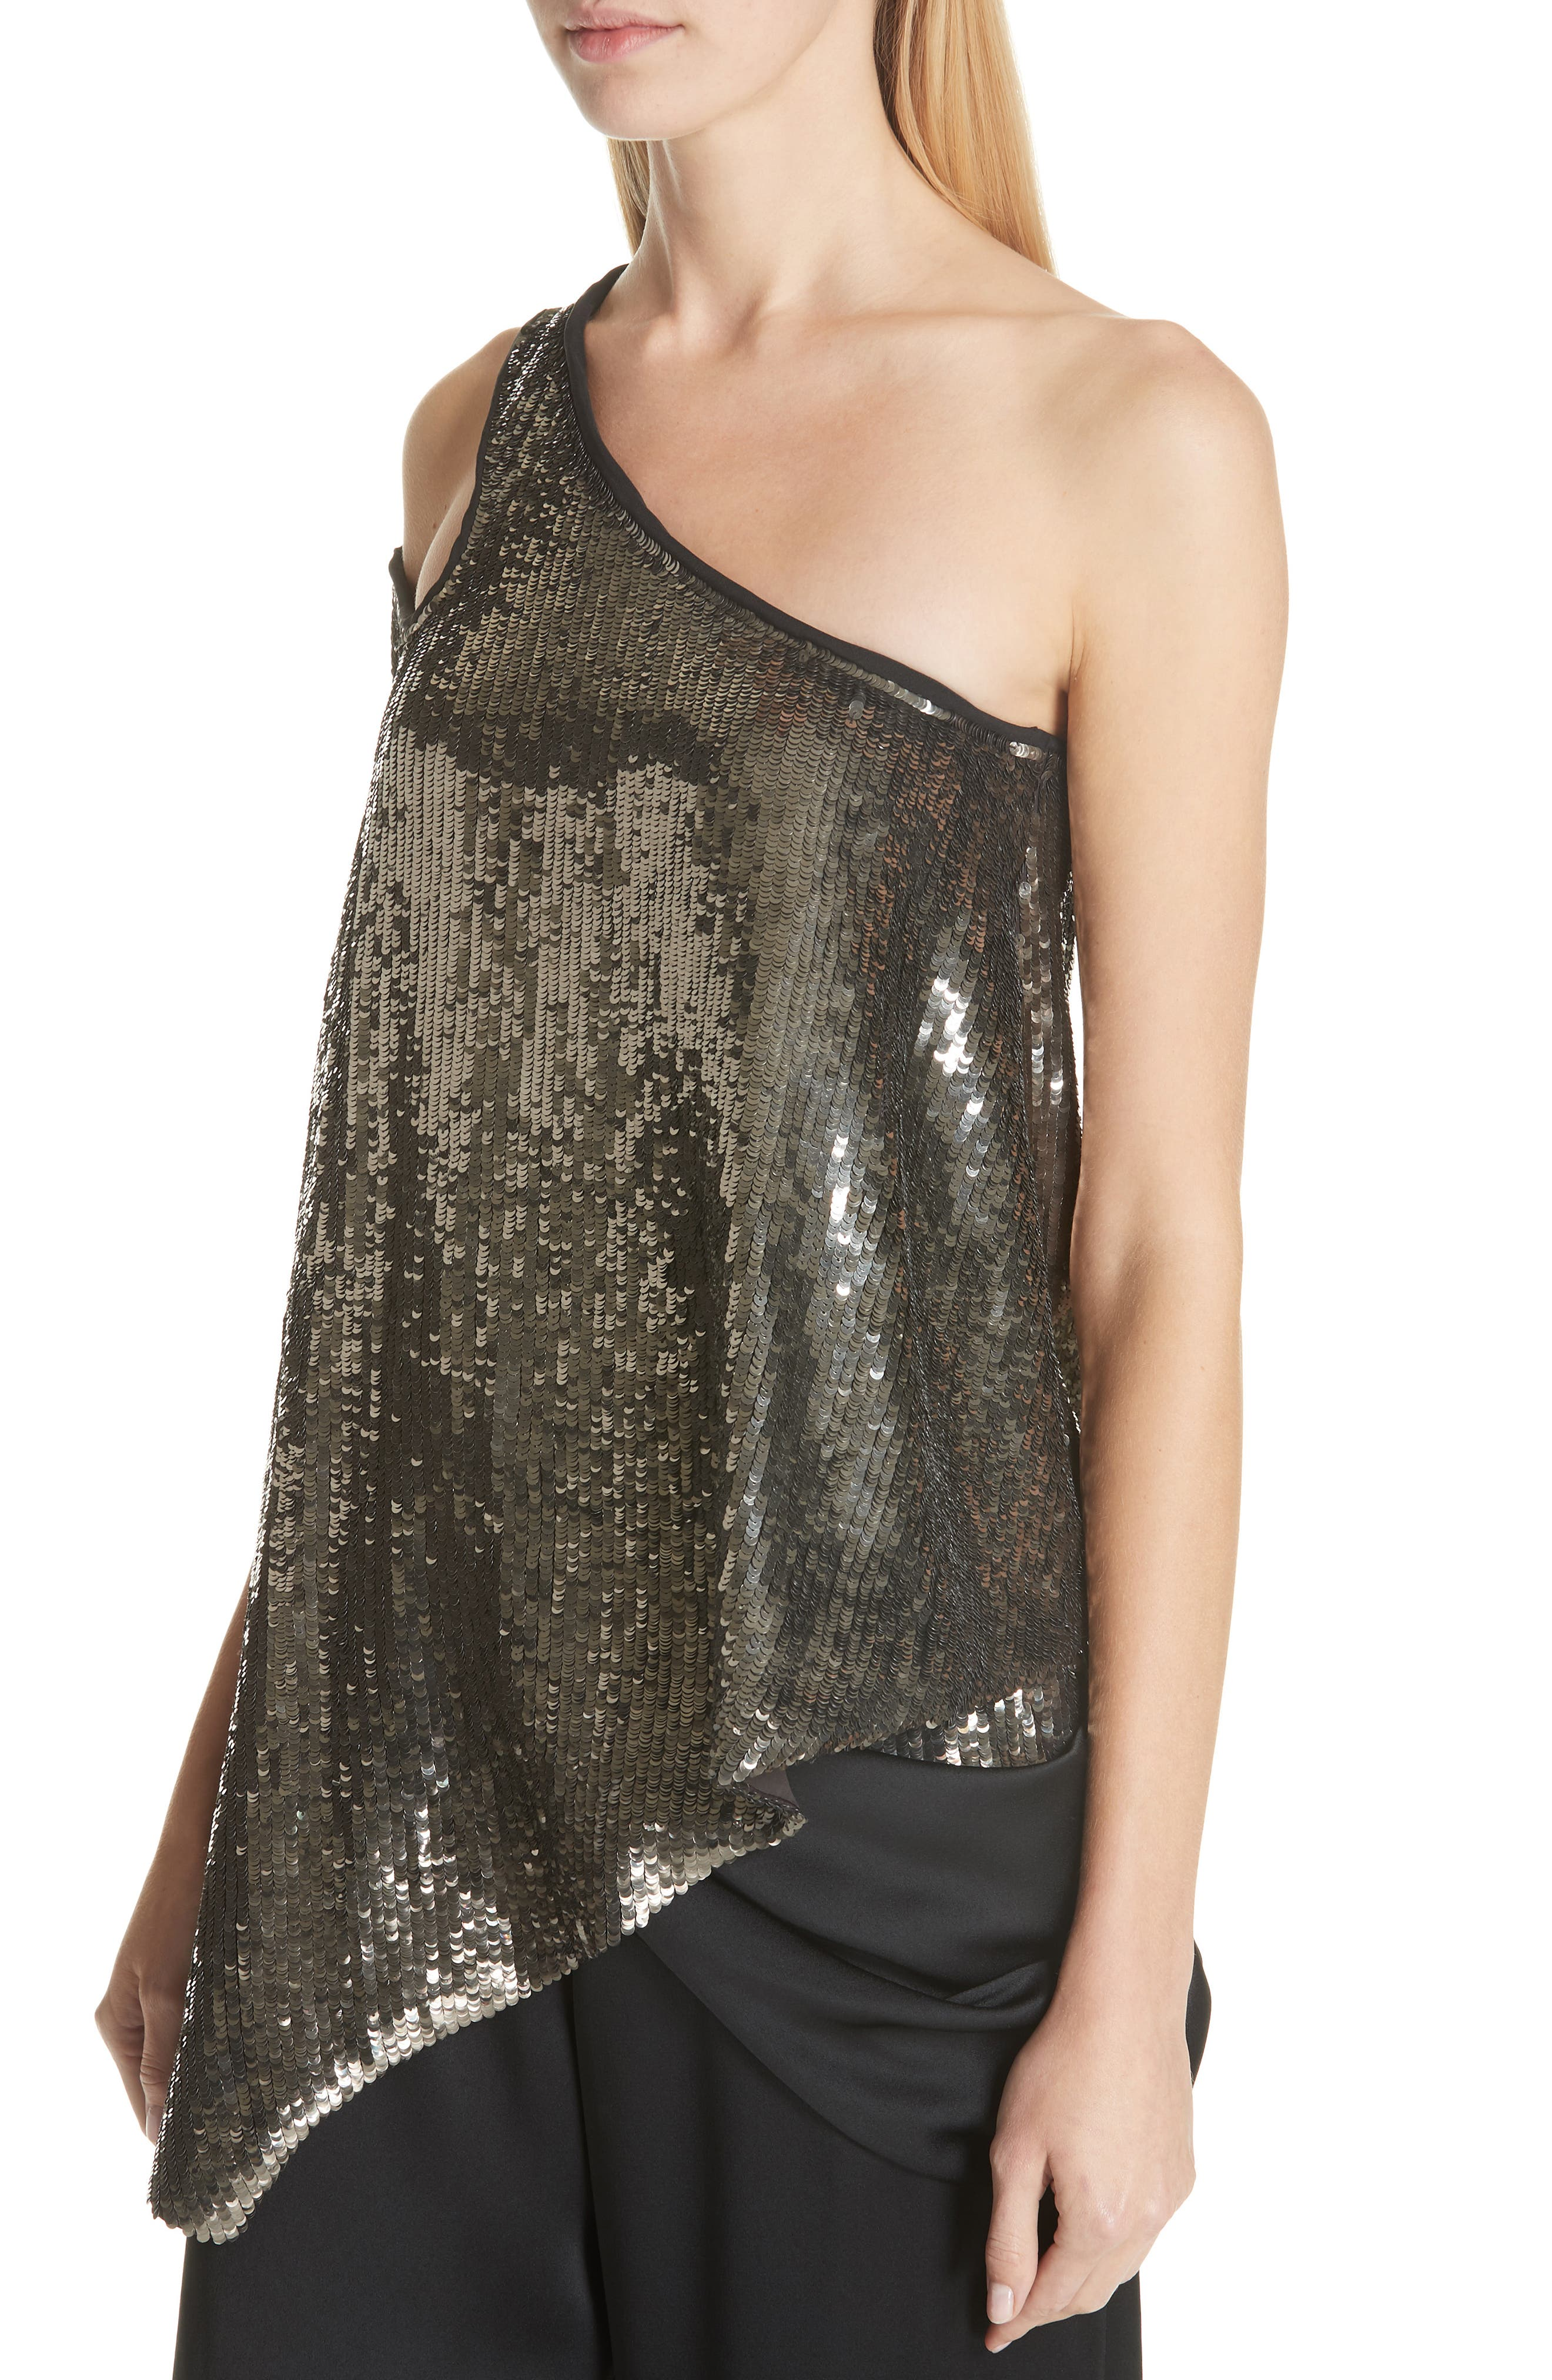 MONSE, Cutout Shoulder Sequin Tank, Alternate thumbnail 4, color, GUN METAL